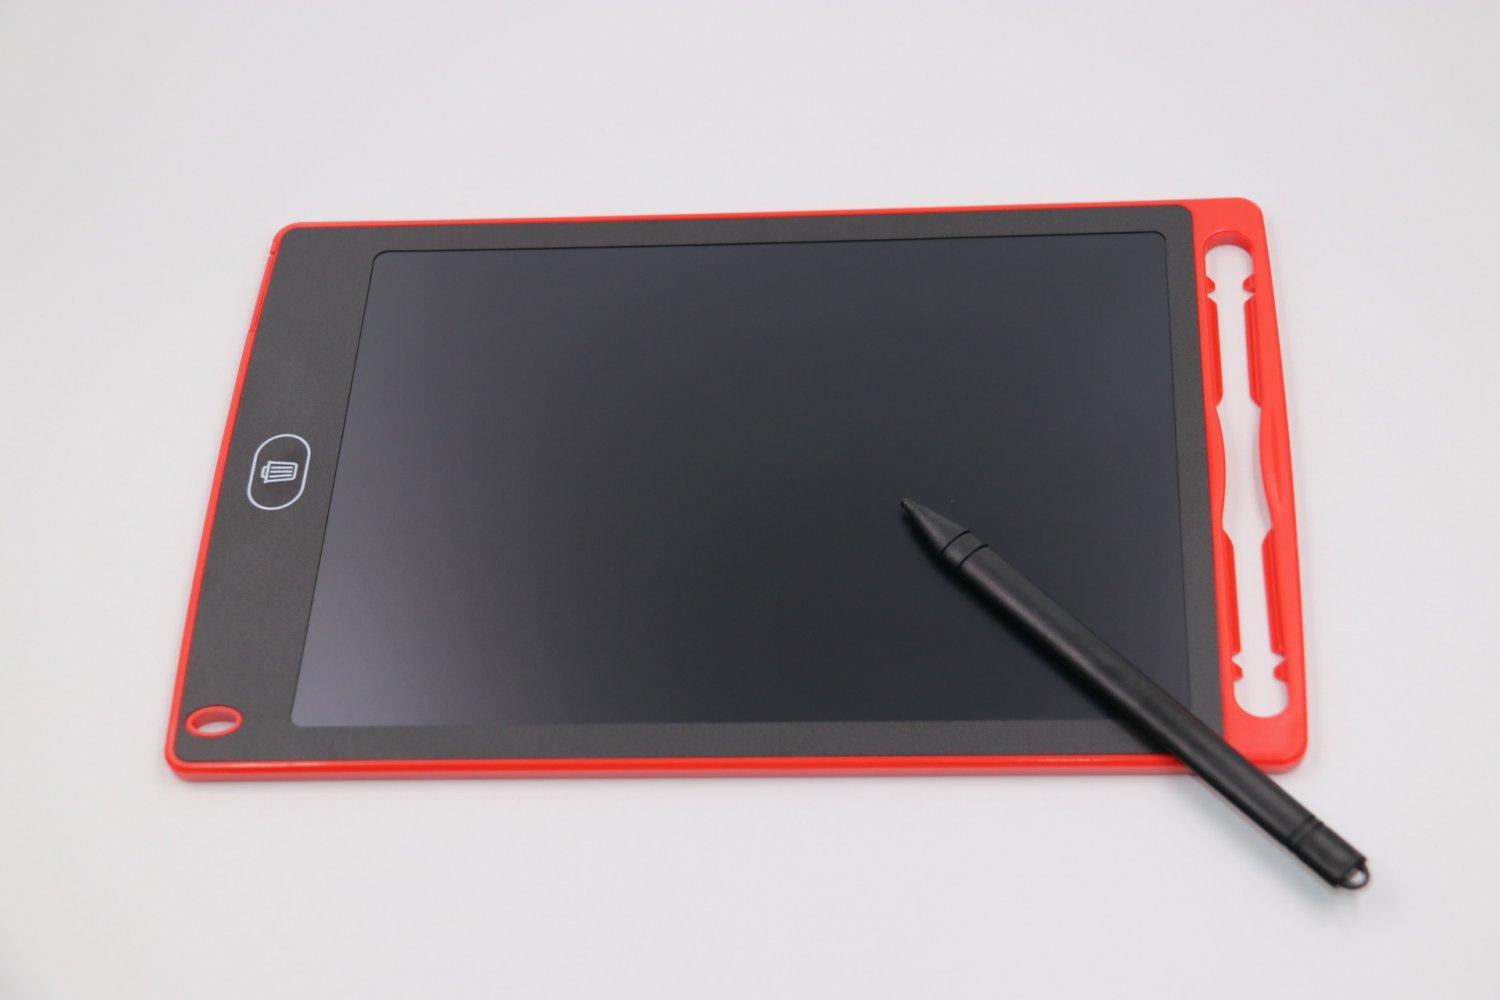 8.5-Inch Drawing Tablet - Lightweight & Compact Design, Flexible LCD Display, Eco-Friendly.